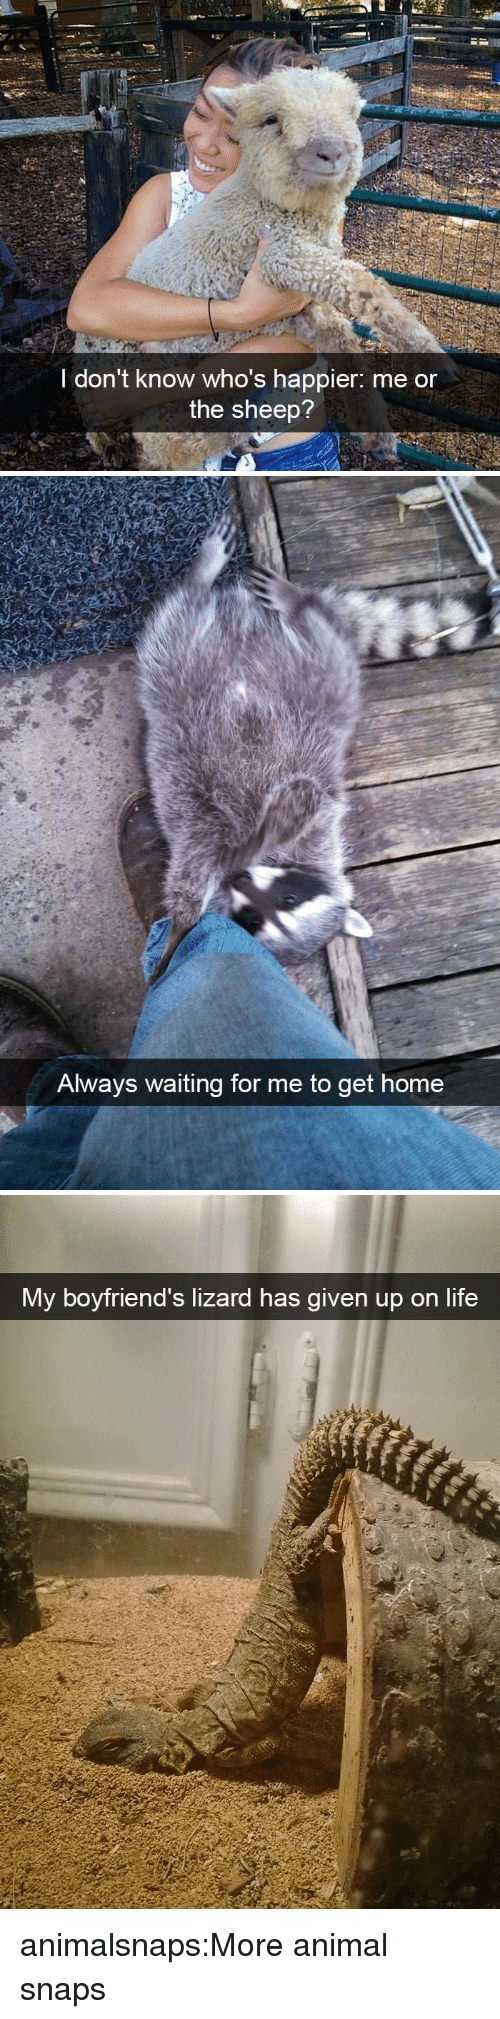 Life, Target, and Tumblr: I don't know who's happier: me or  the sheep?   Always waiting for me to get  home   My boyfriend's lizard has given up on life animalsnaps:More animal snaps